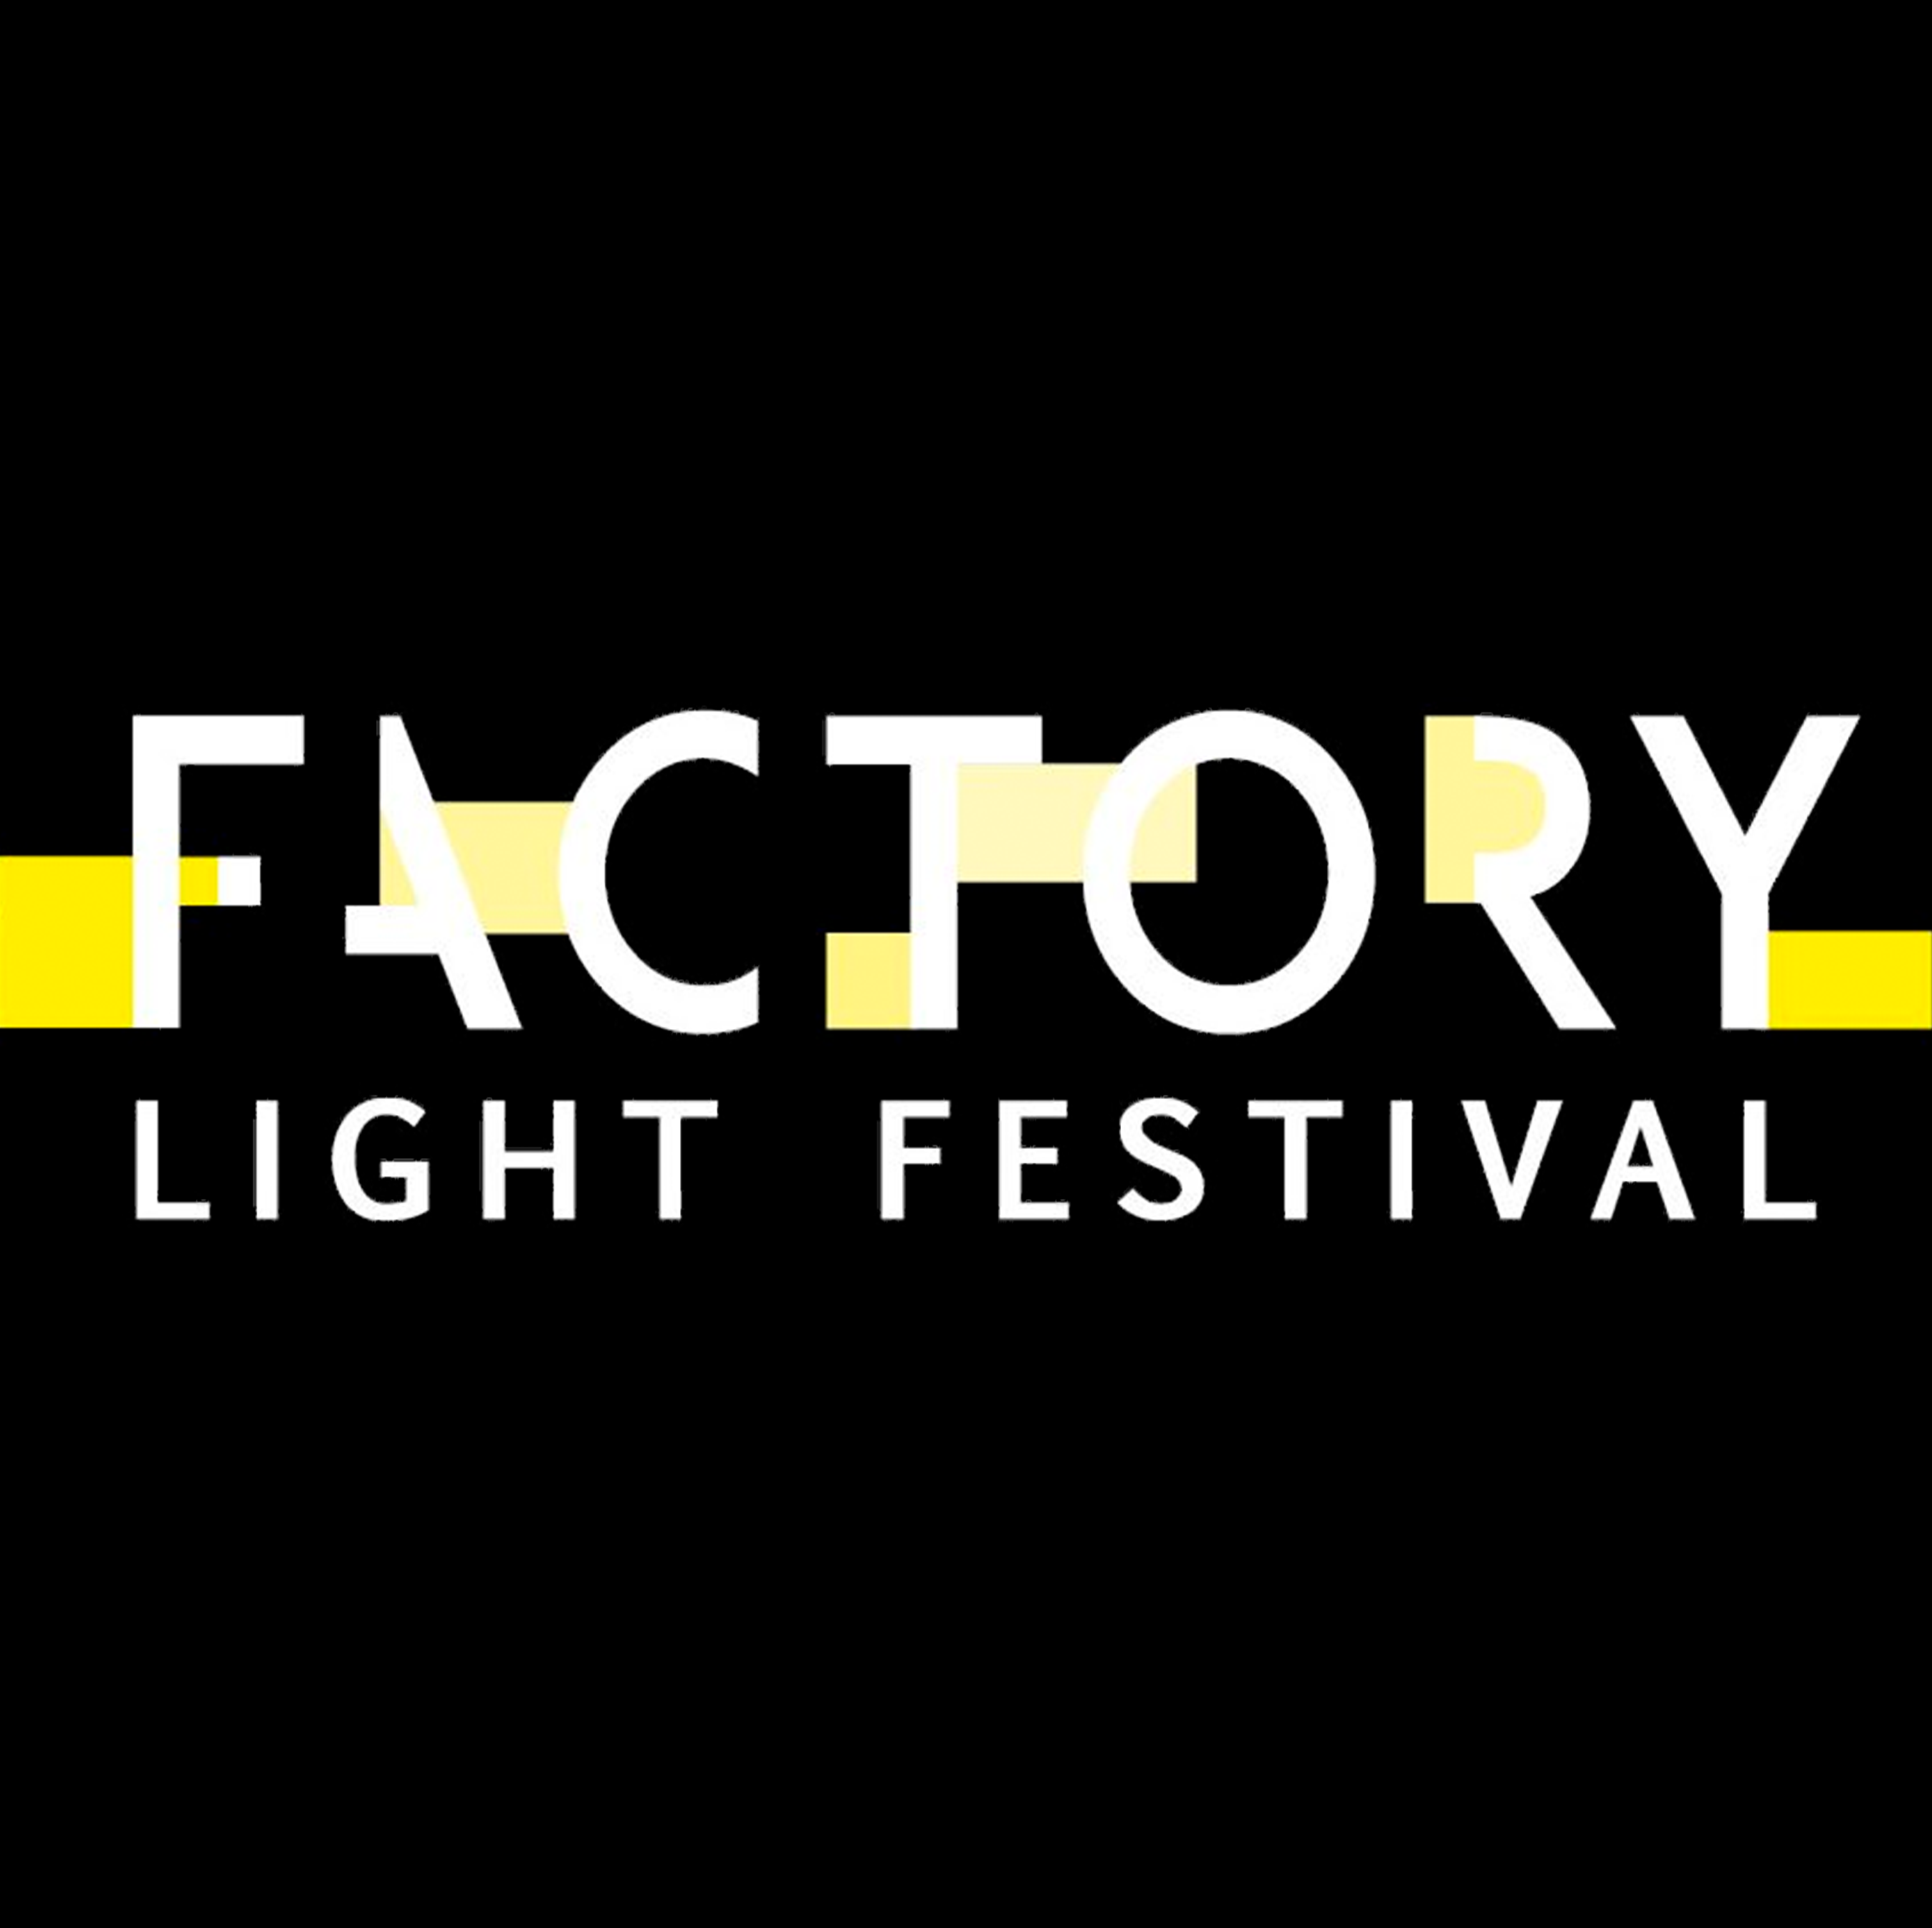 factory light festival logo